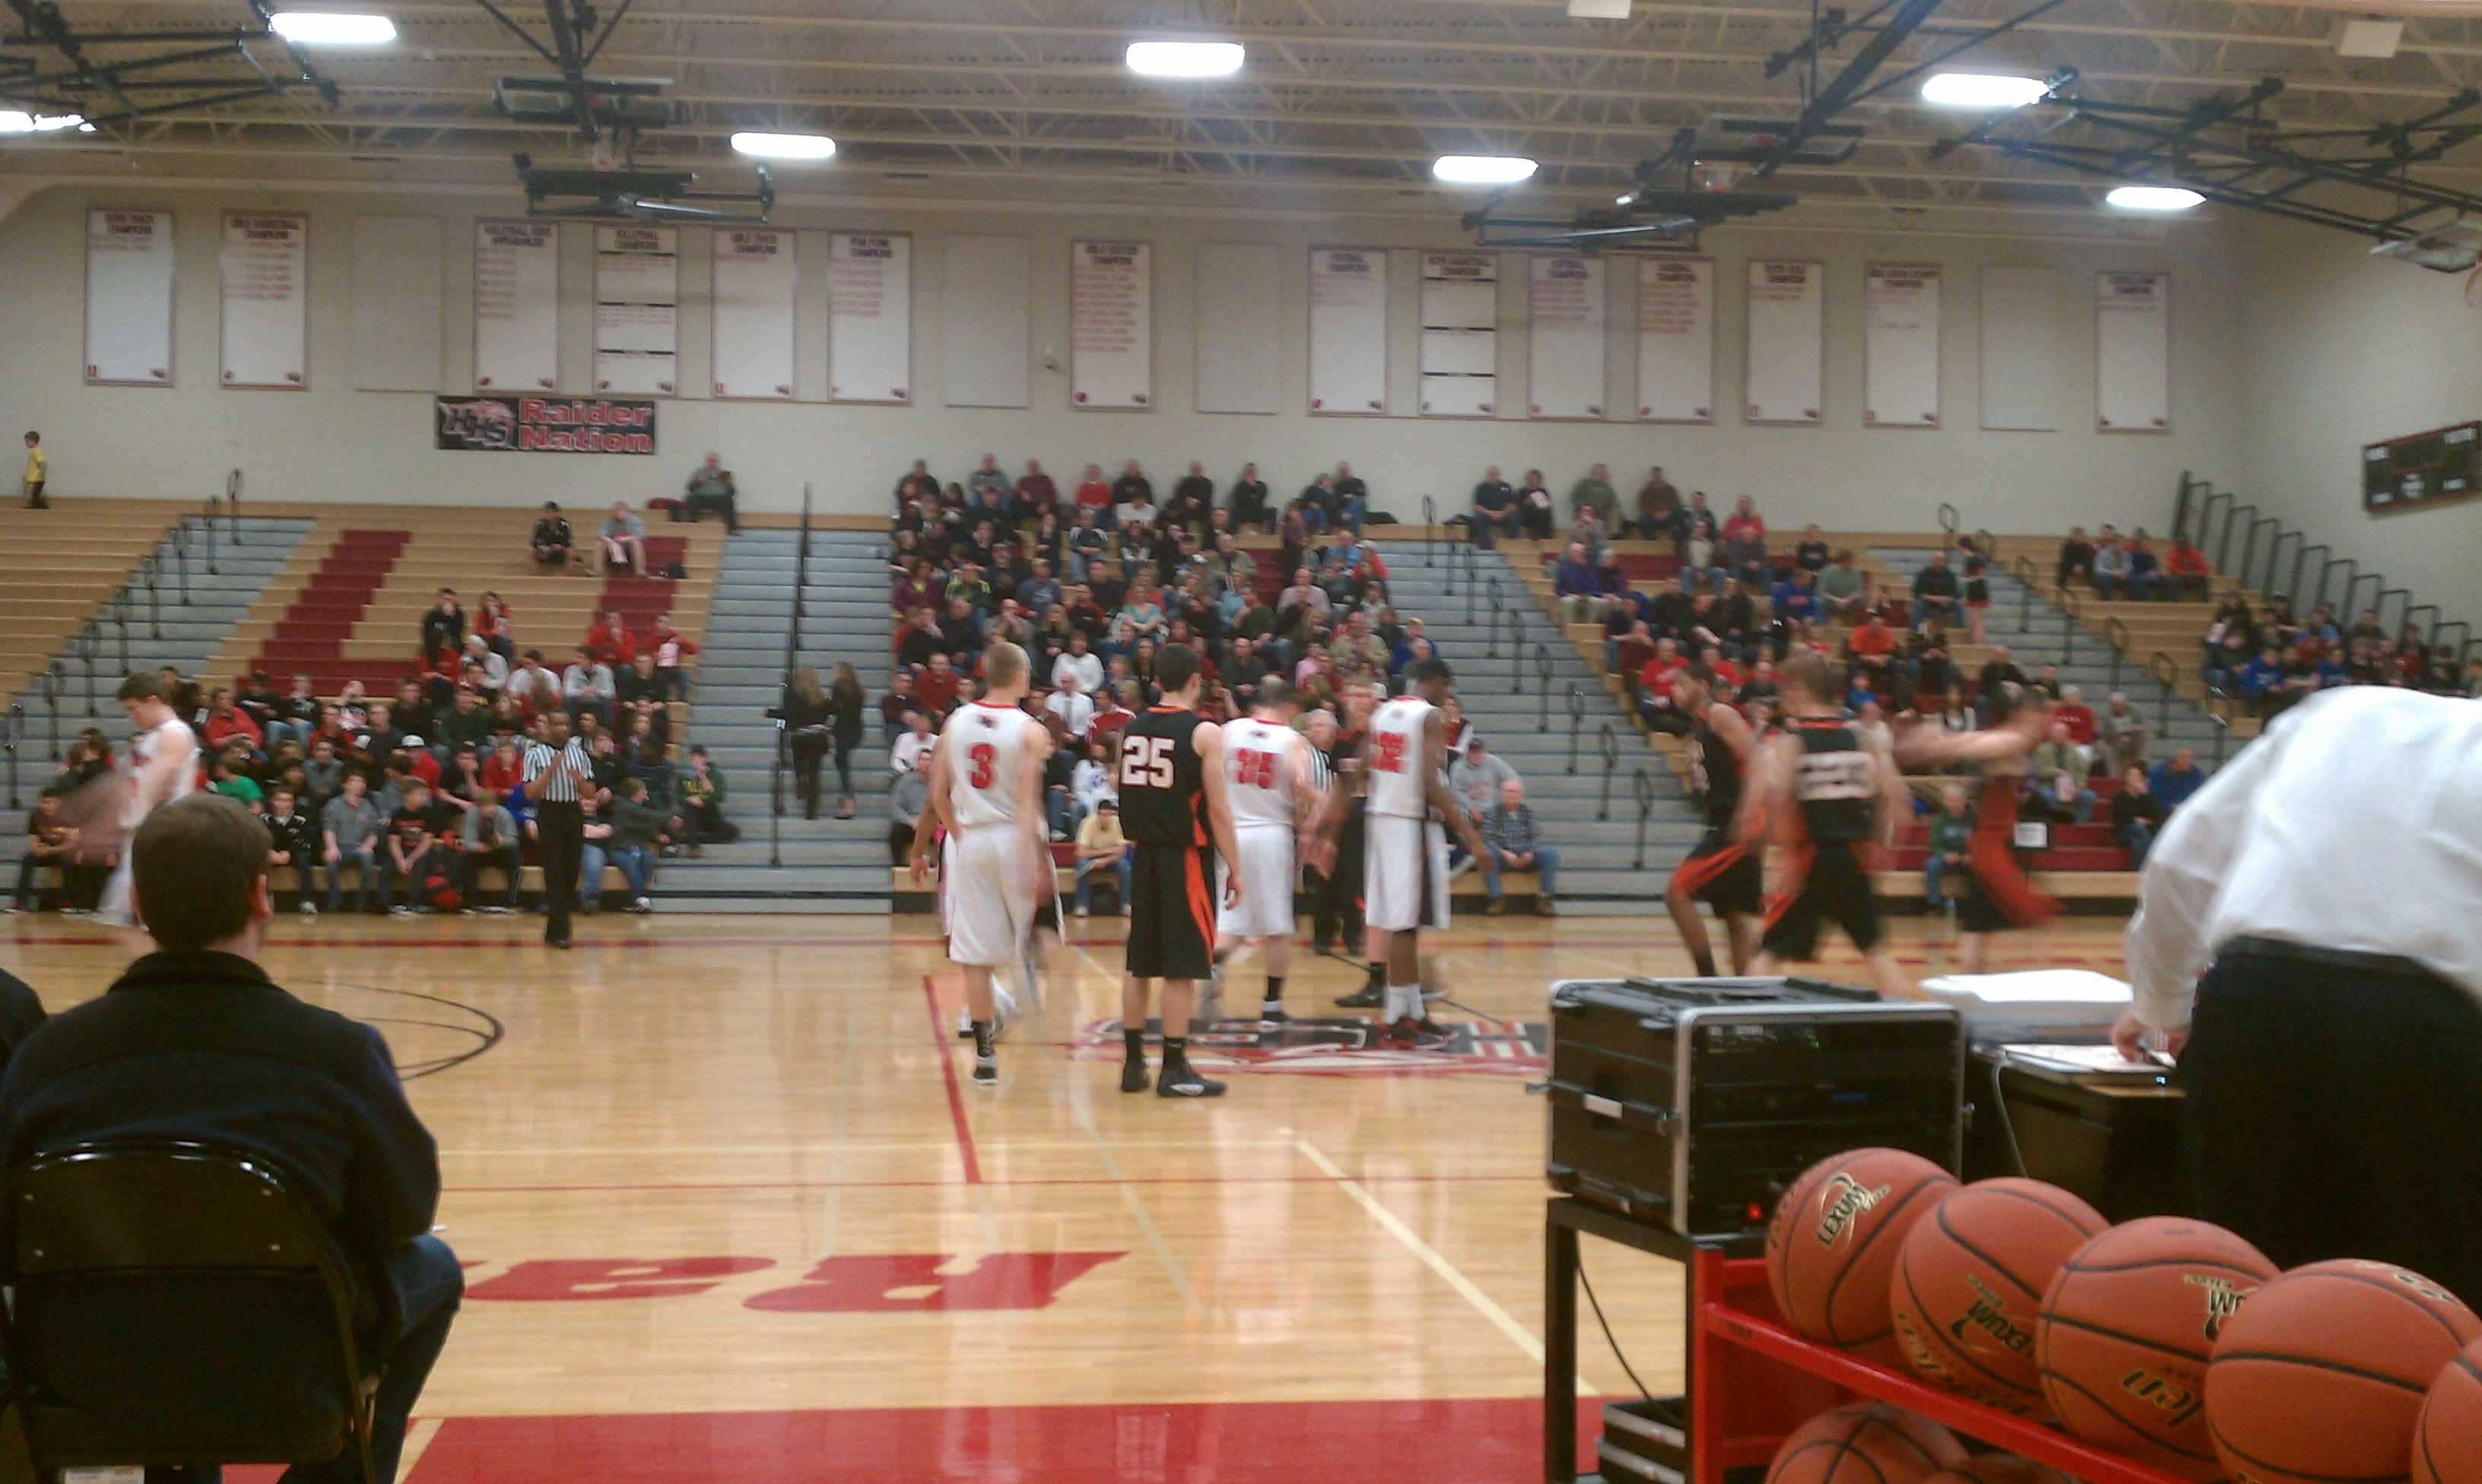 Huntley High School won a 40-37 victory over DeKalb and advanced into the regional championship game (T. Heagney).